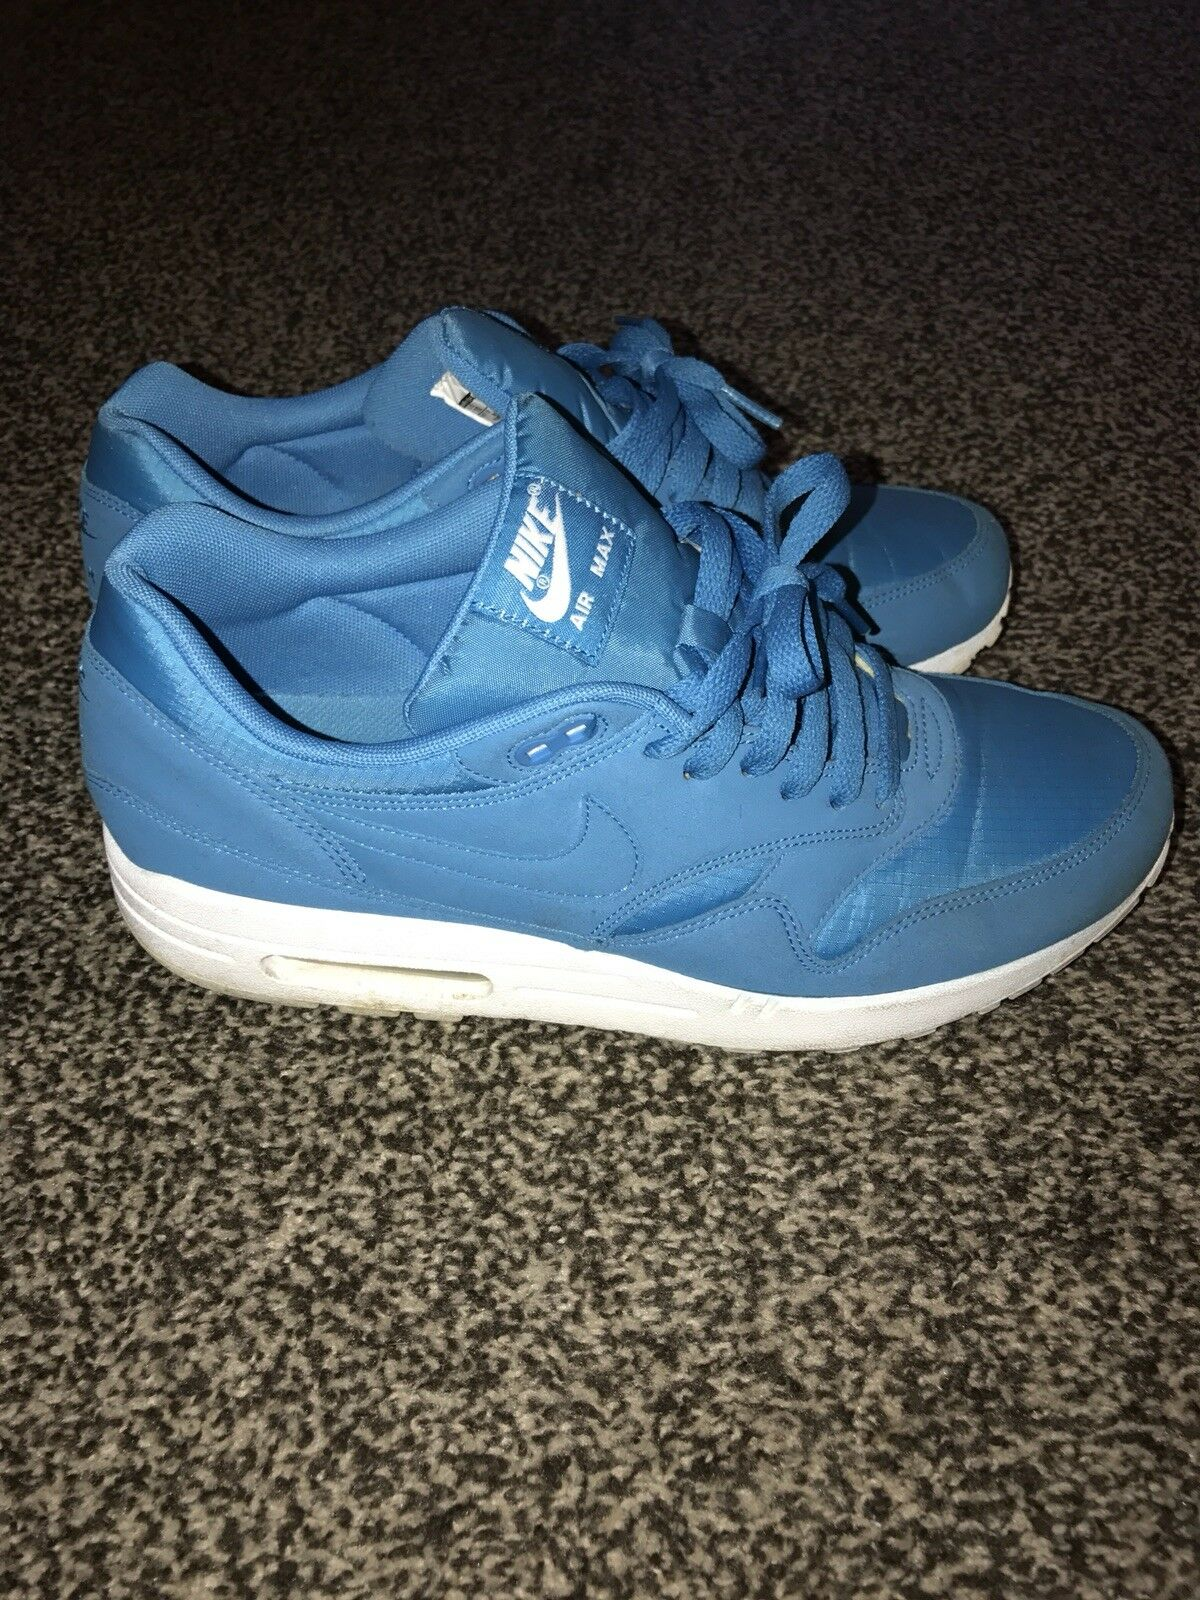 Nike Airmax 1 Ripstop Size Electric Blue Nike Air Size Ripstop 10 b9856d